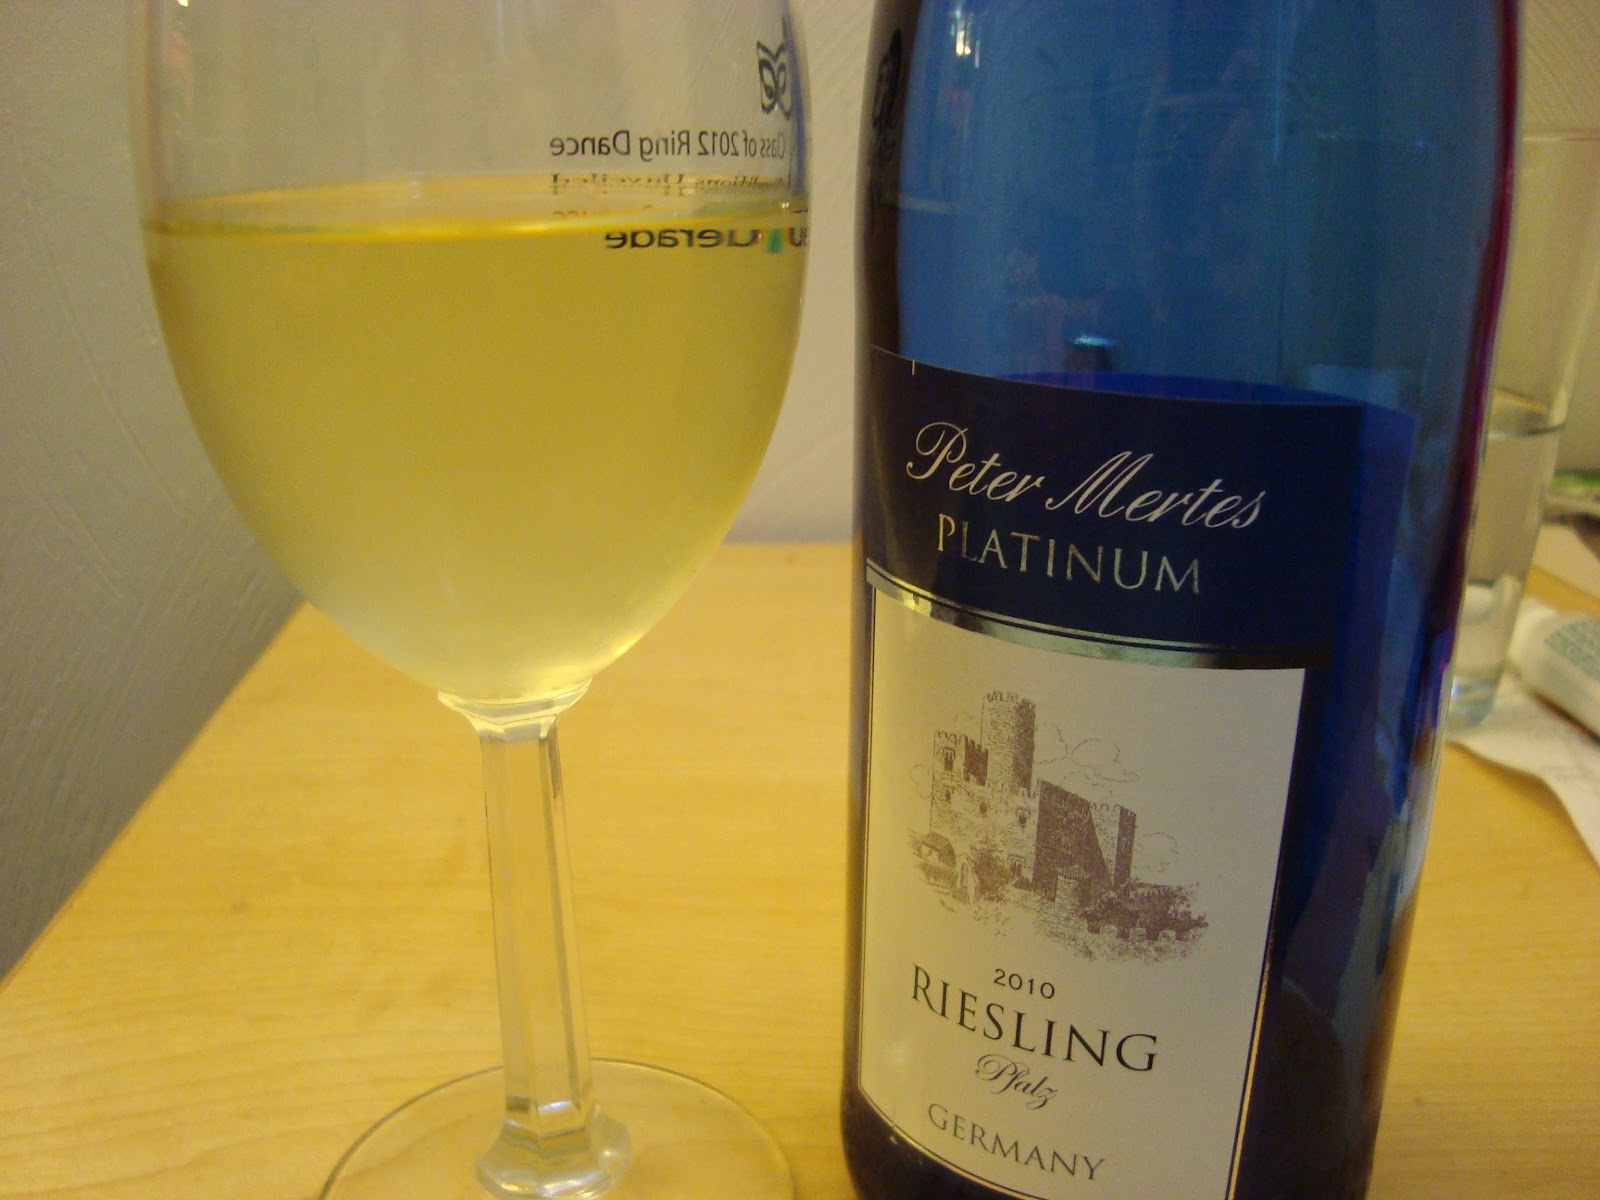 Peter Mertes Platinum This wine was a